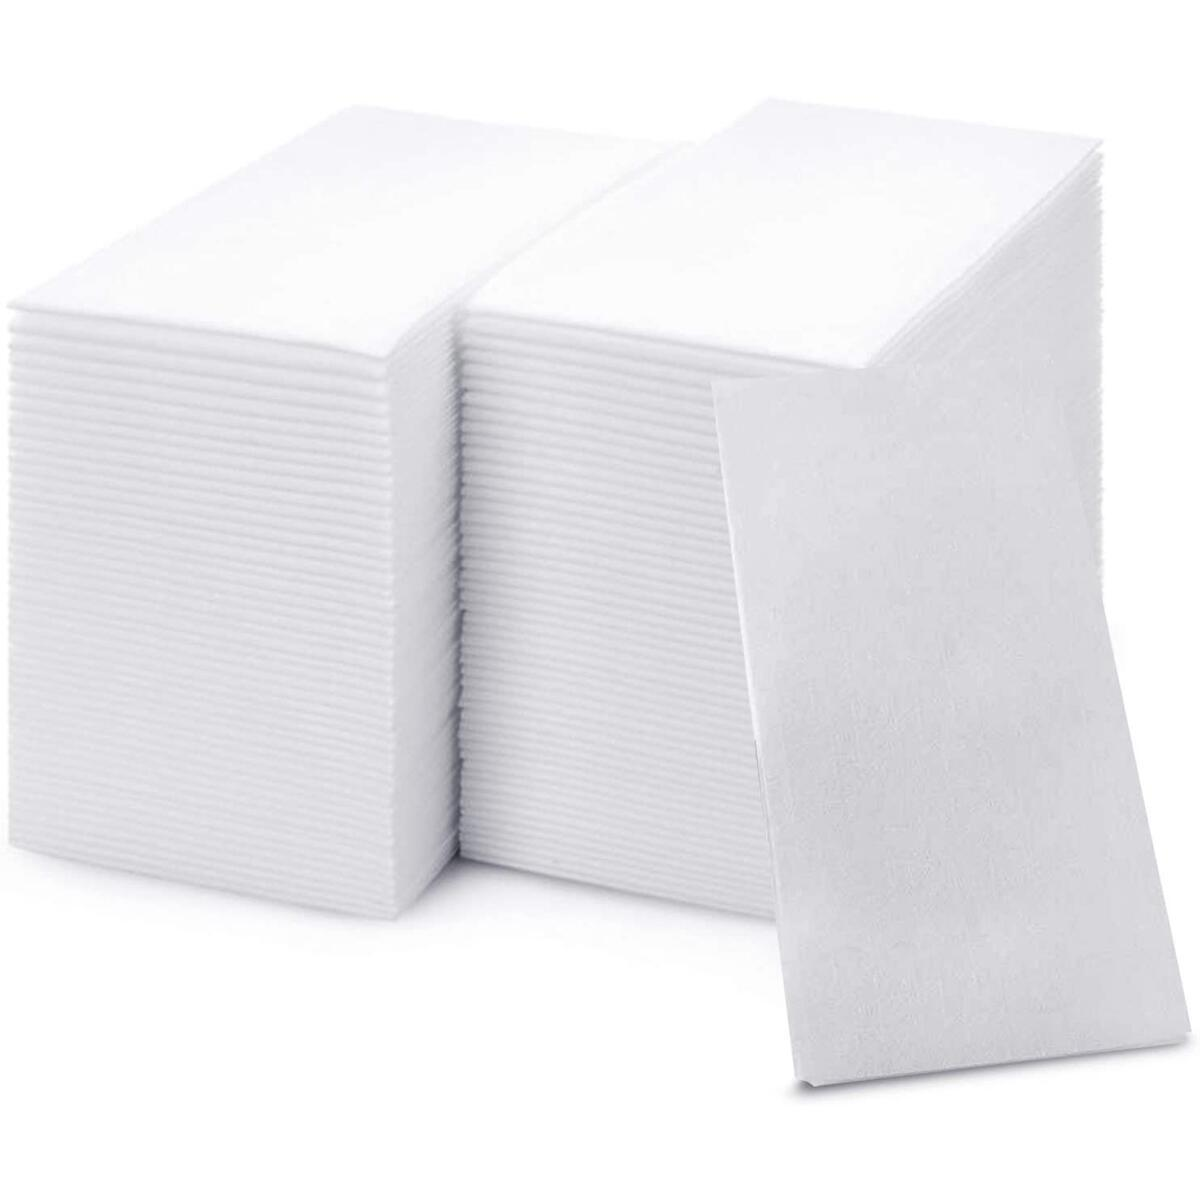 shawberri 200 Premium Disposable Linen-Feel Soft Guest Towels, Absorbent Napkins – Multi-fold Hand Tissue, Hygienic Solution For Kitchen, Bathroom, Party, Weddings and Events